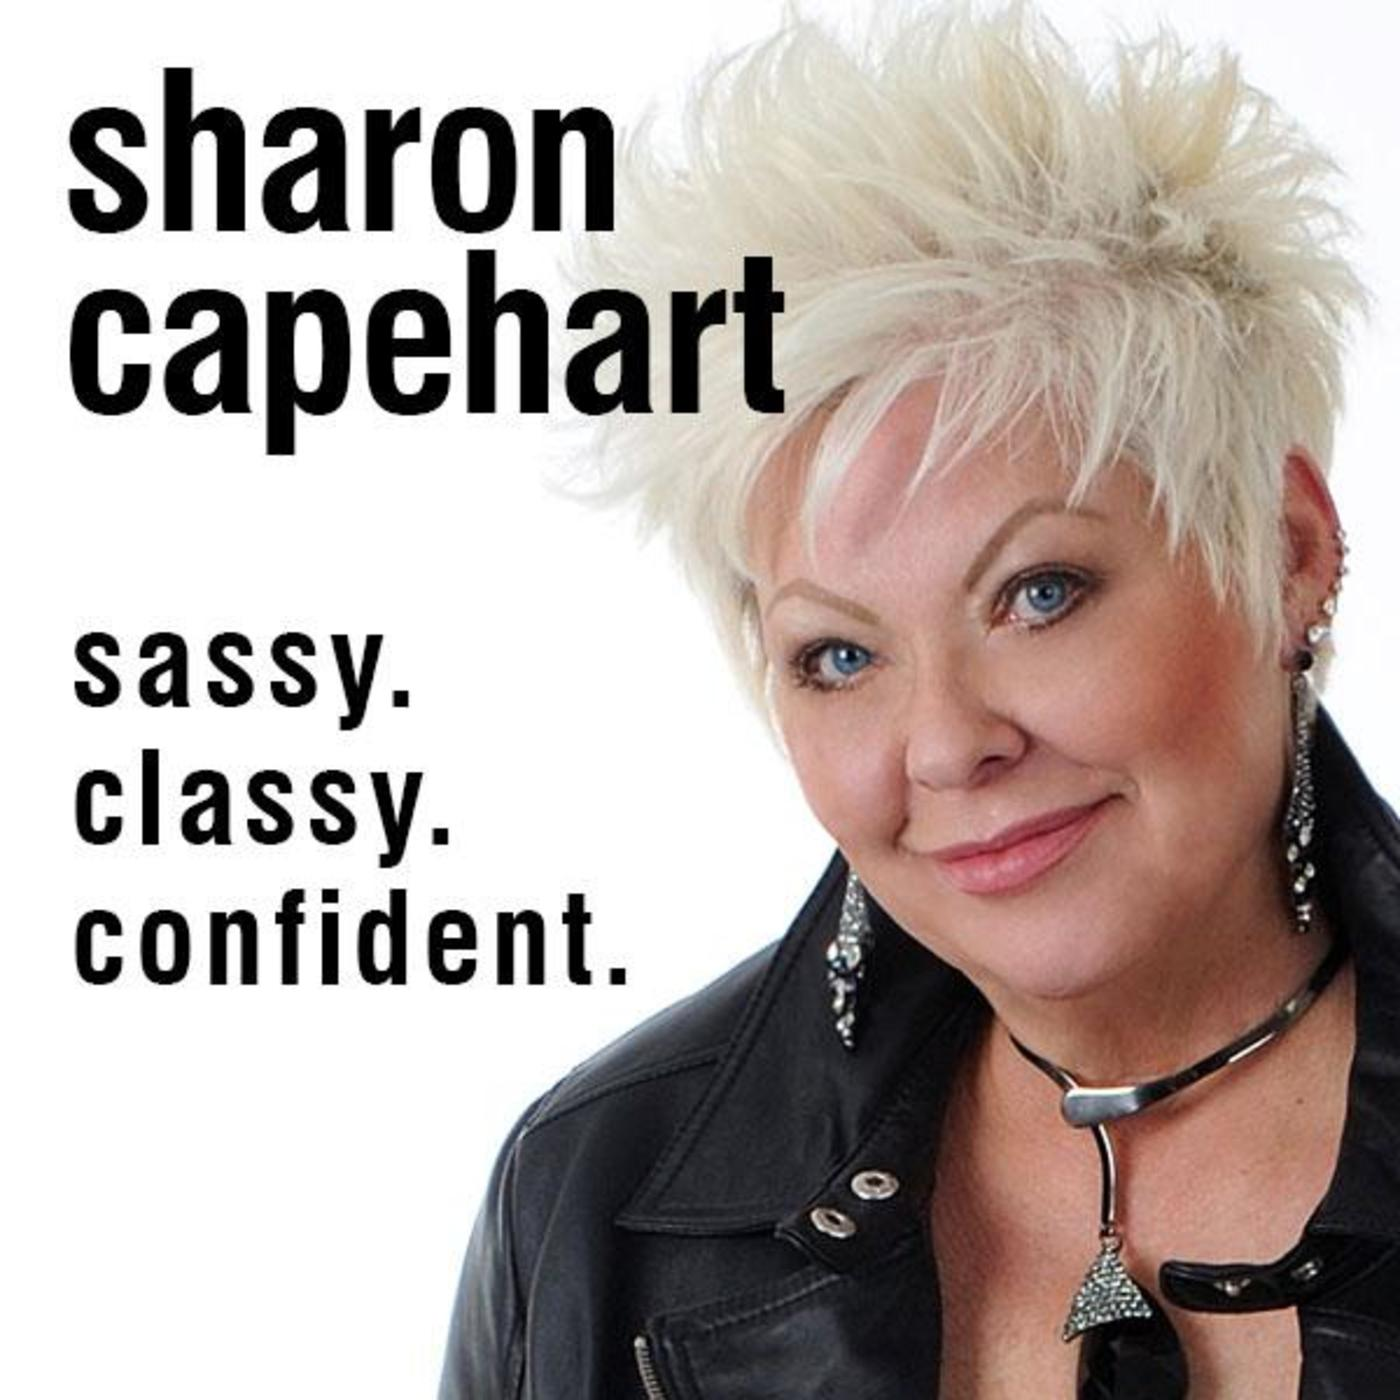 POWER UP! with Sharon Capehart